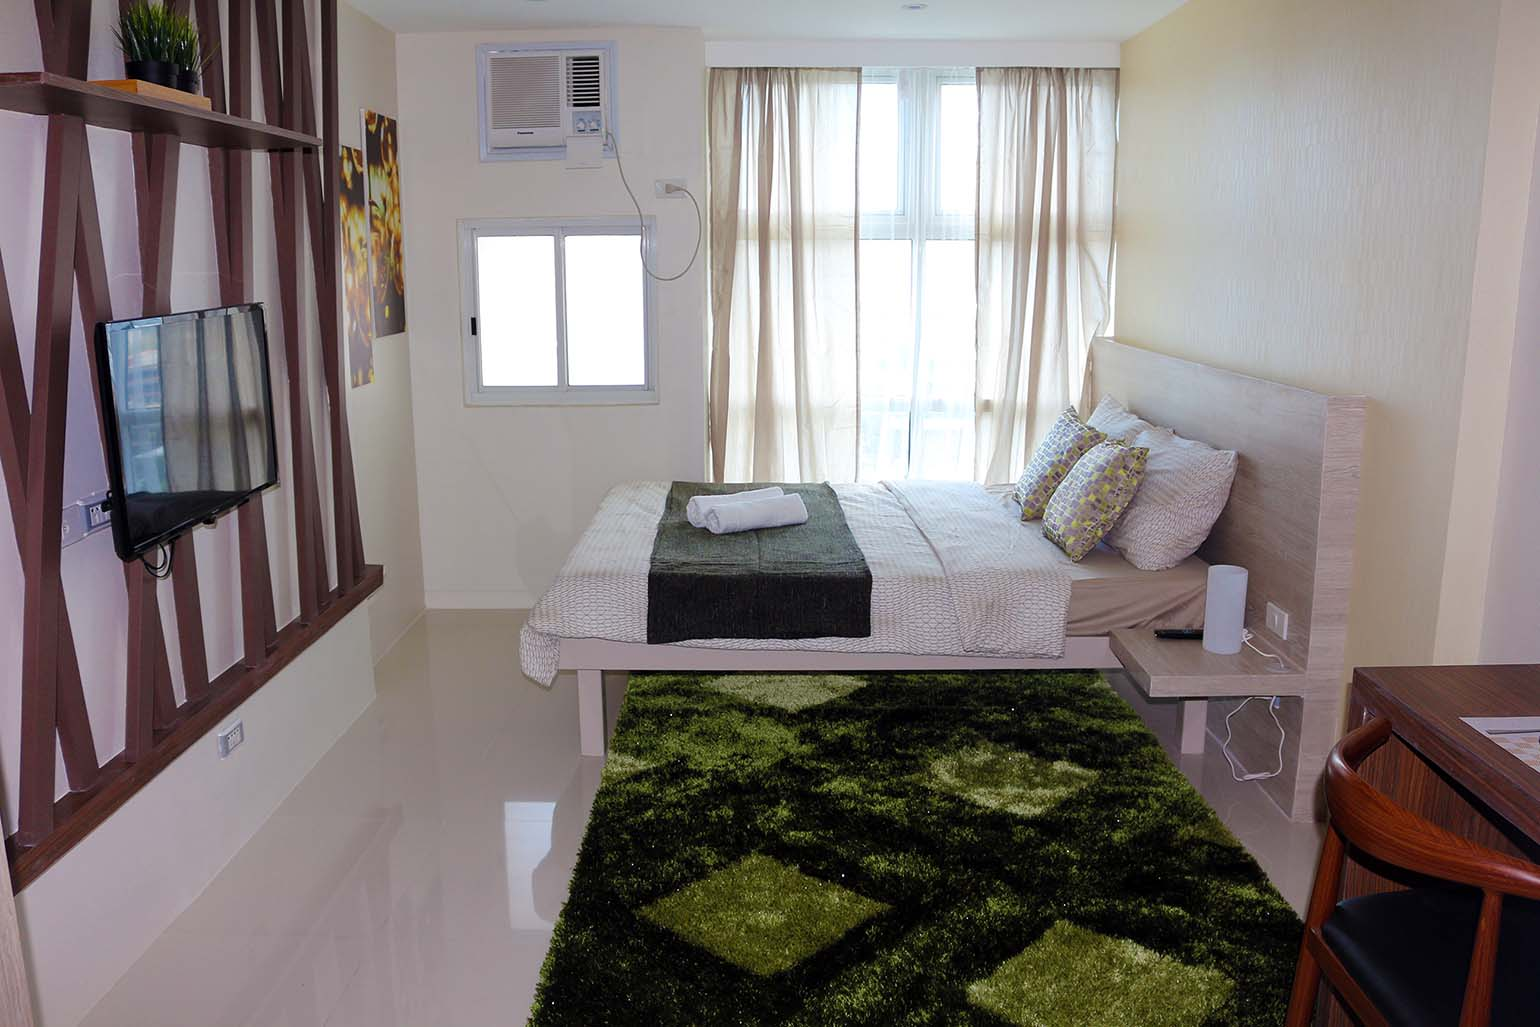 Fully runished studio condo for rent in quezon city near - Interior design services near me ...